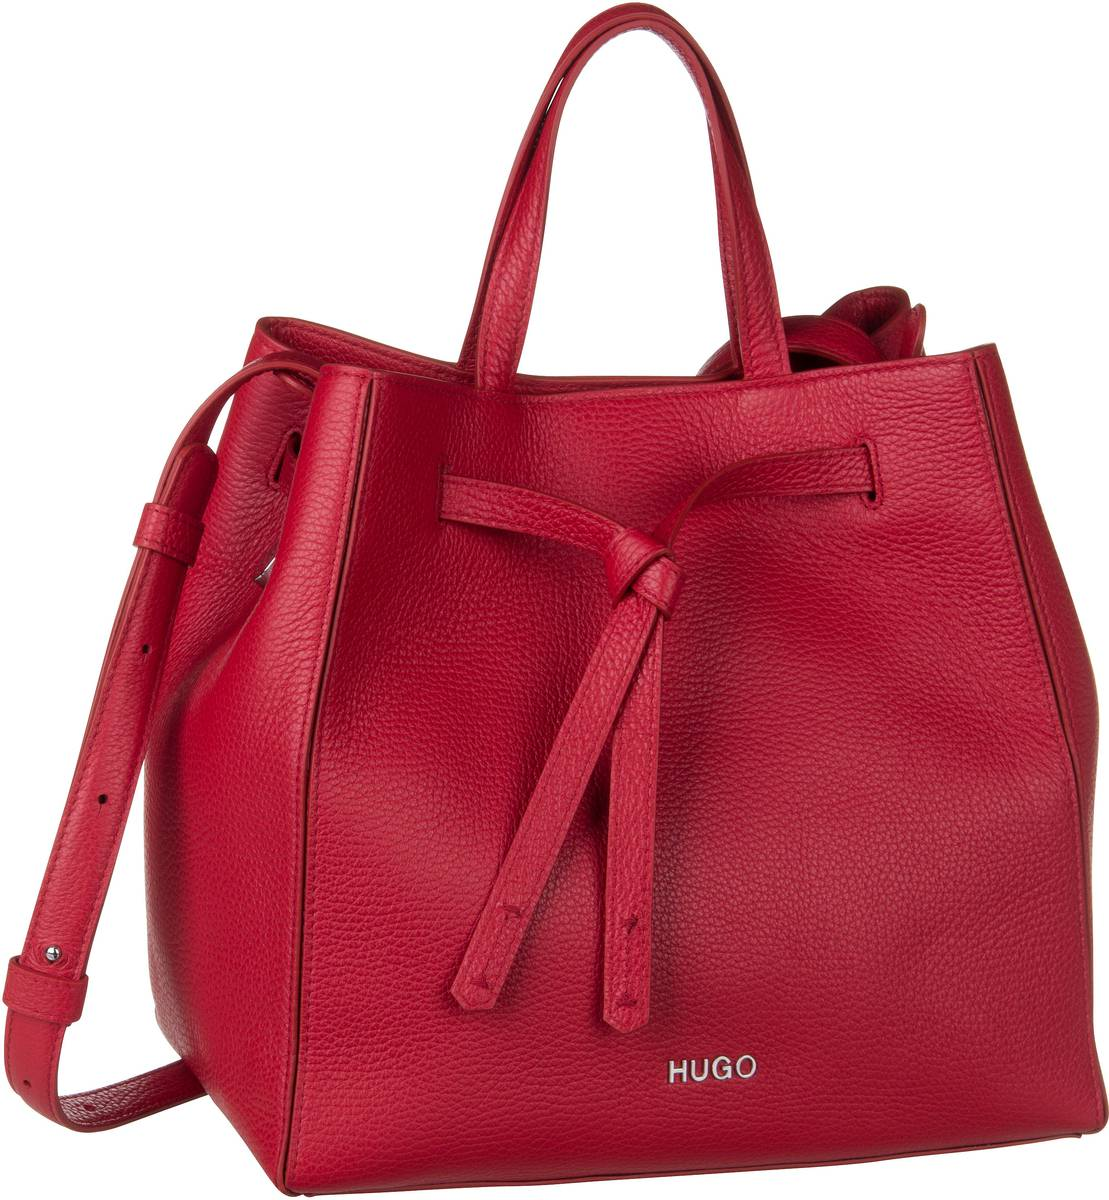 HUGO Handtasche Mayfair Drawstring 397974 Bright Red